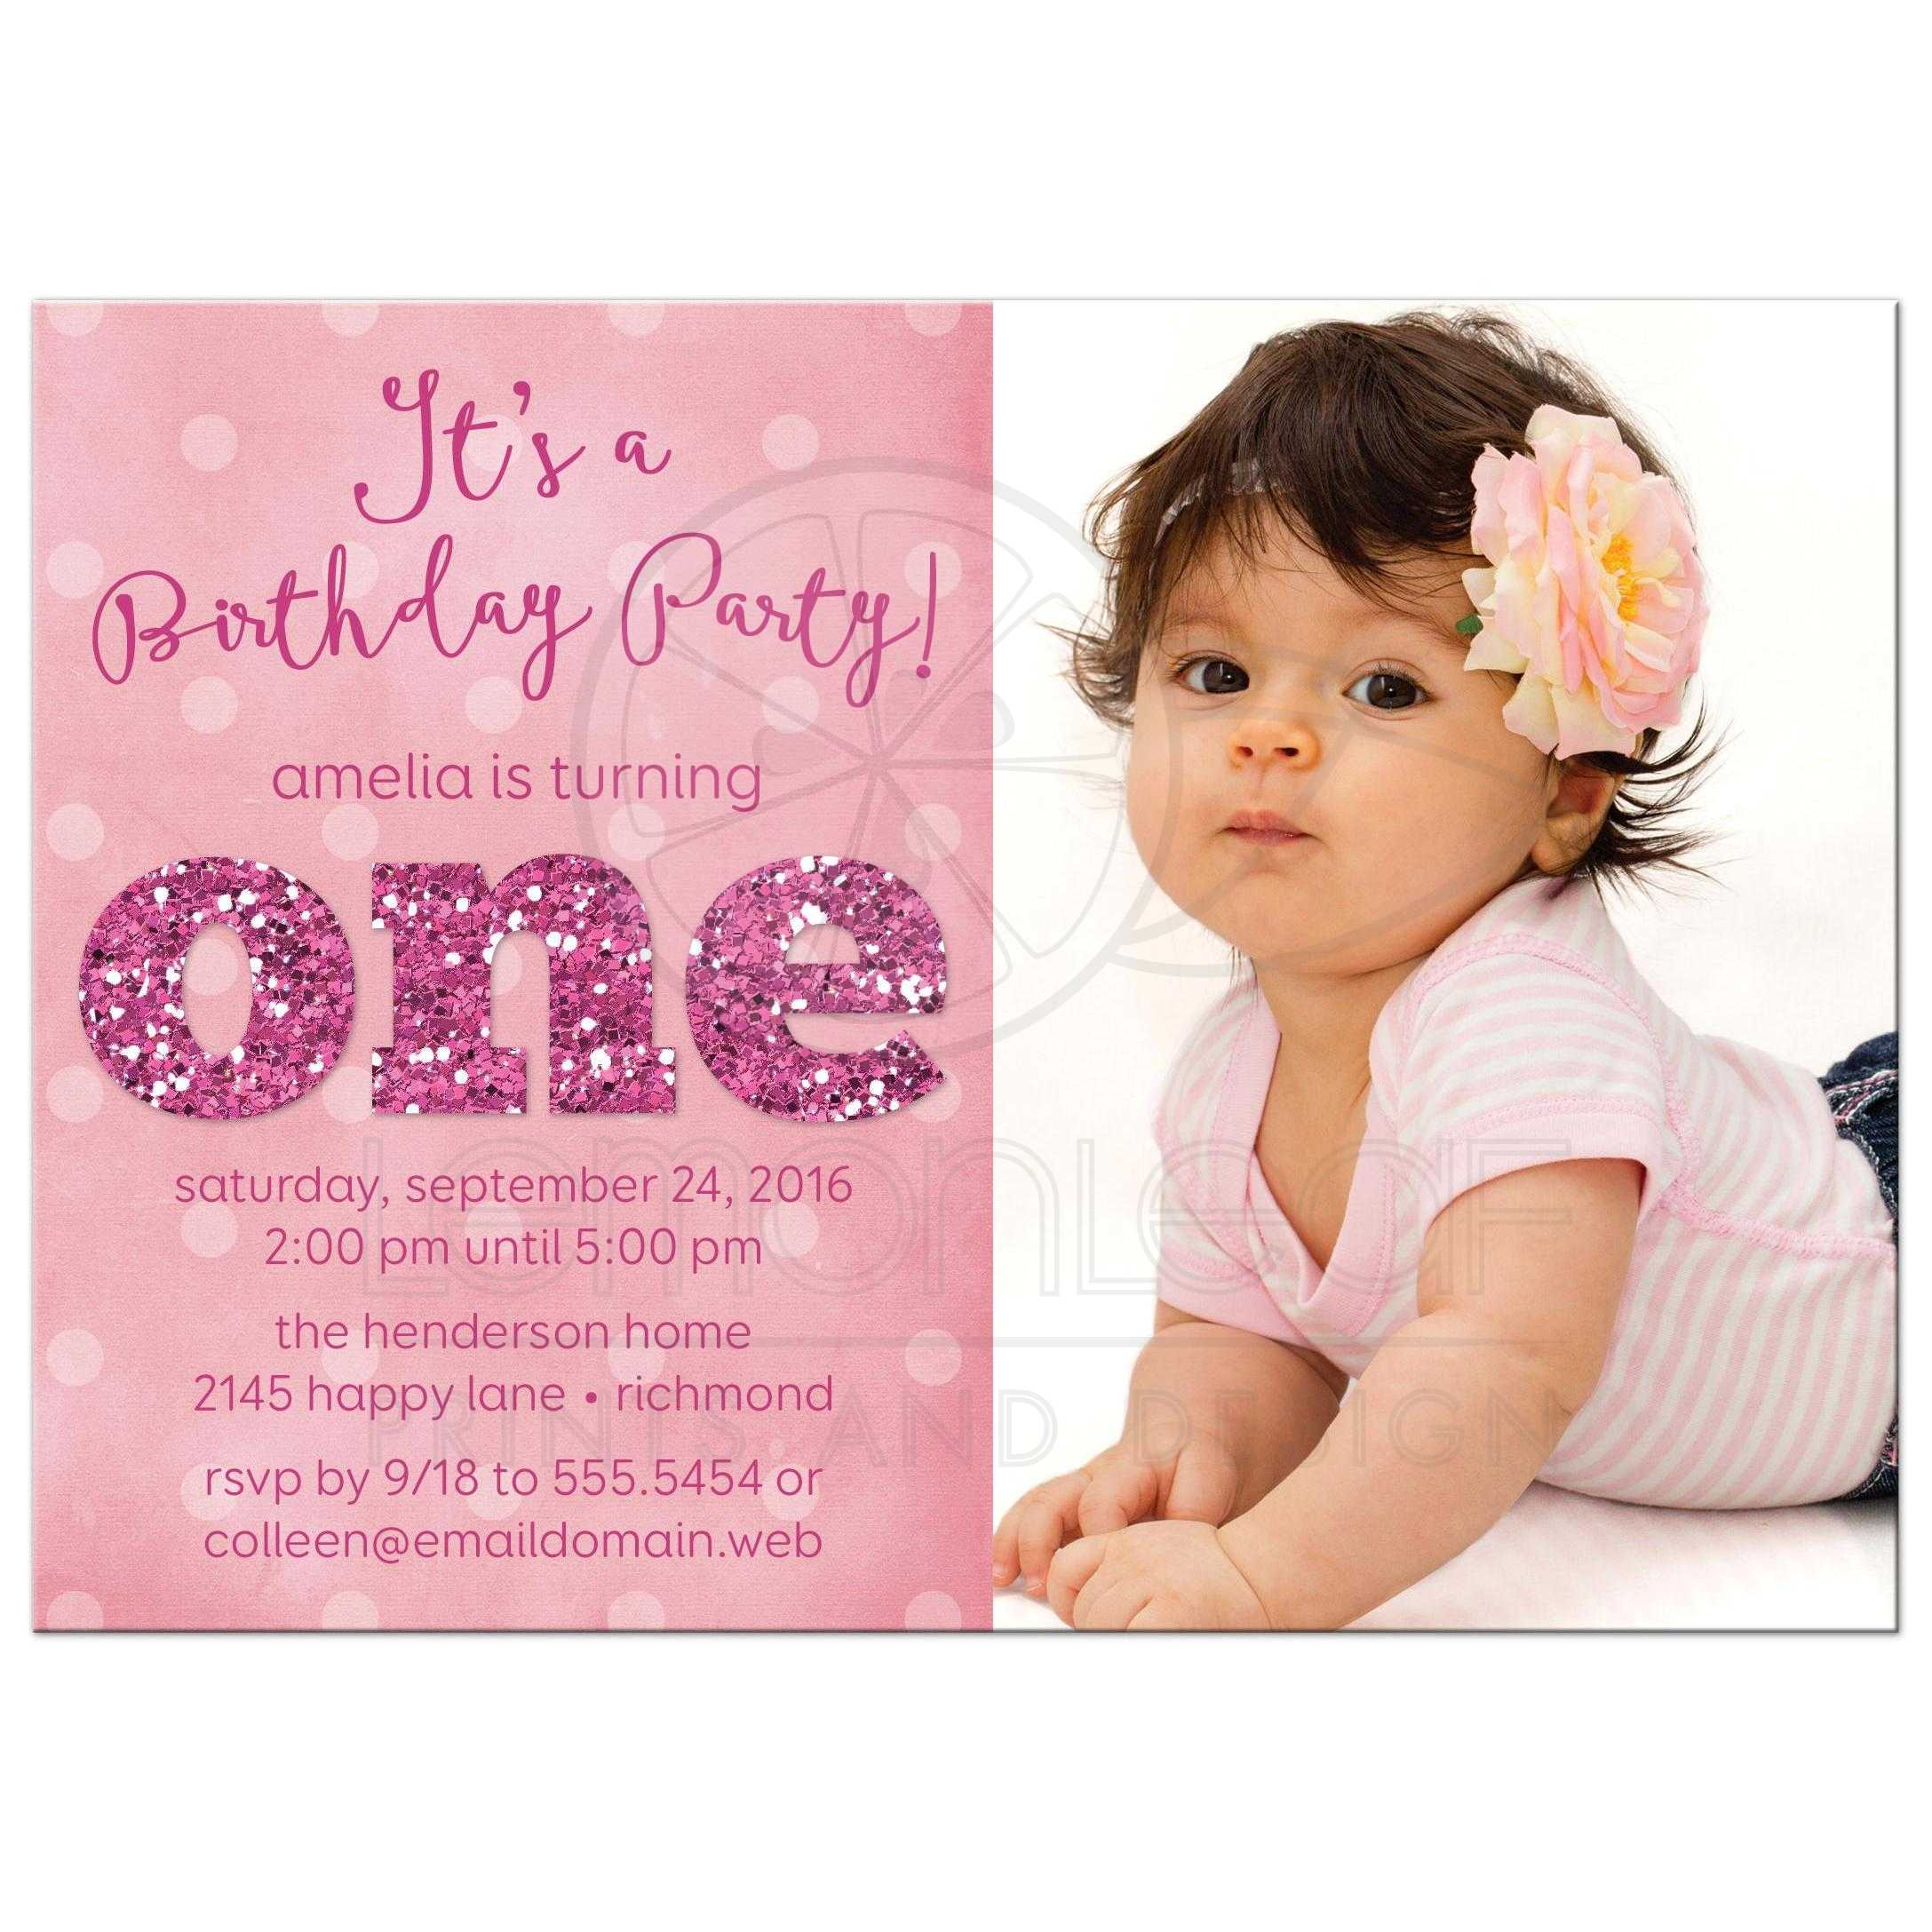 Baby birthday party invitations yeniscale baby birthday party invitations stopboris Image collections